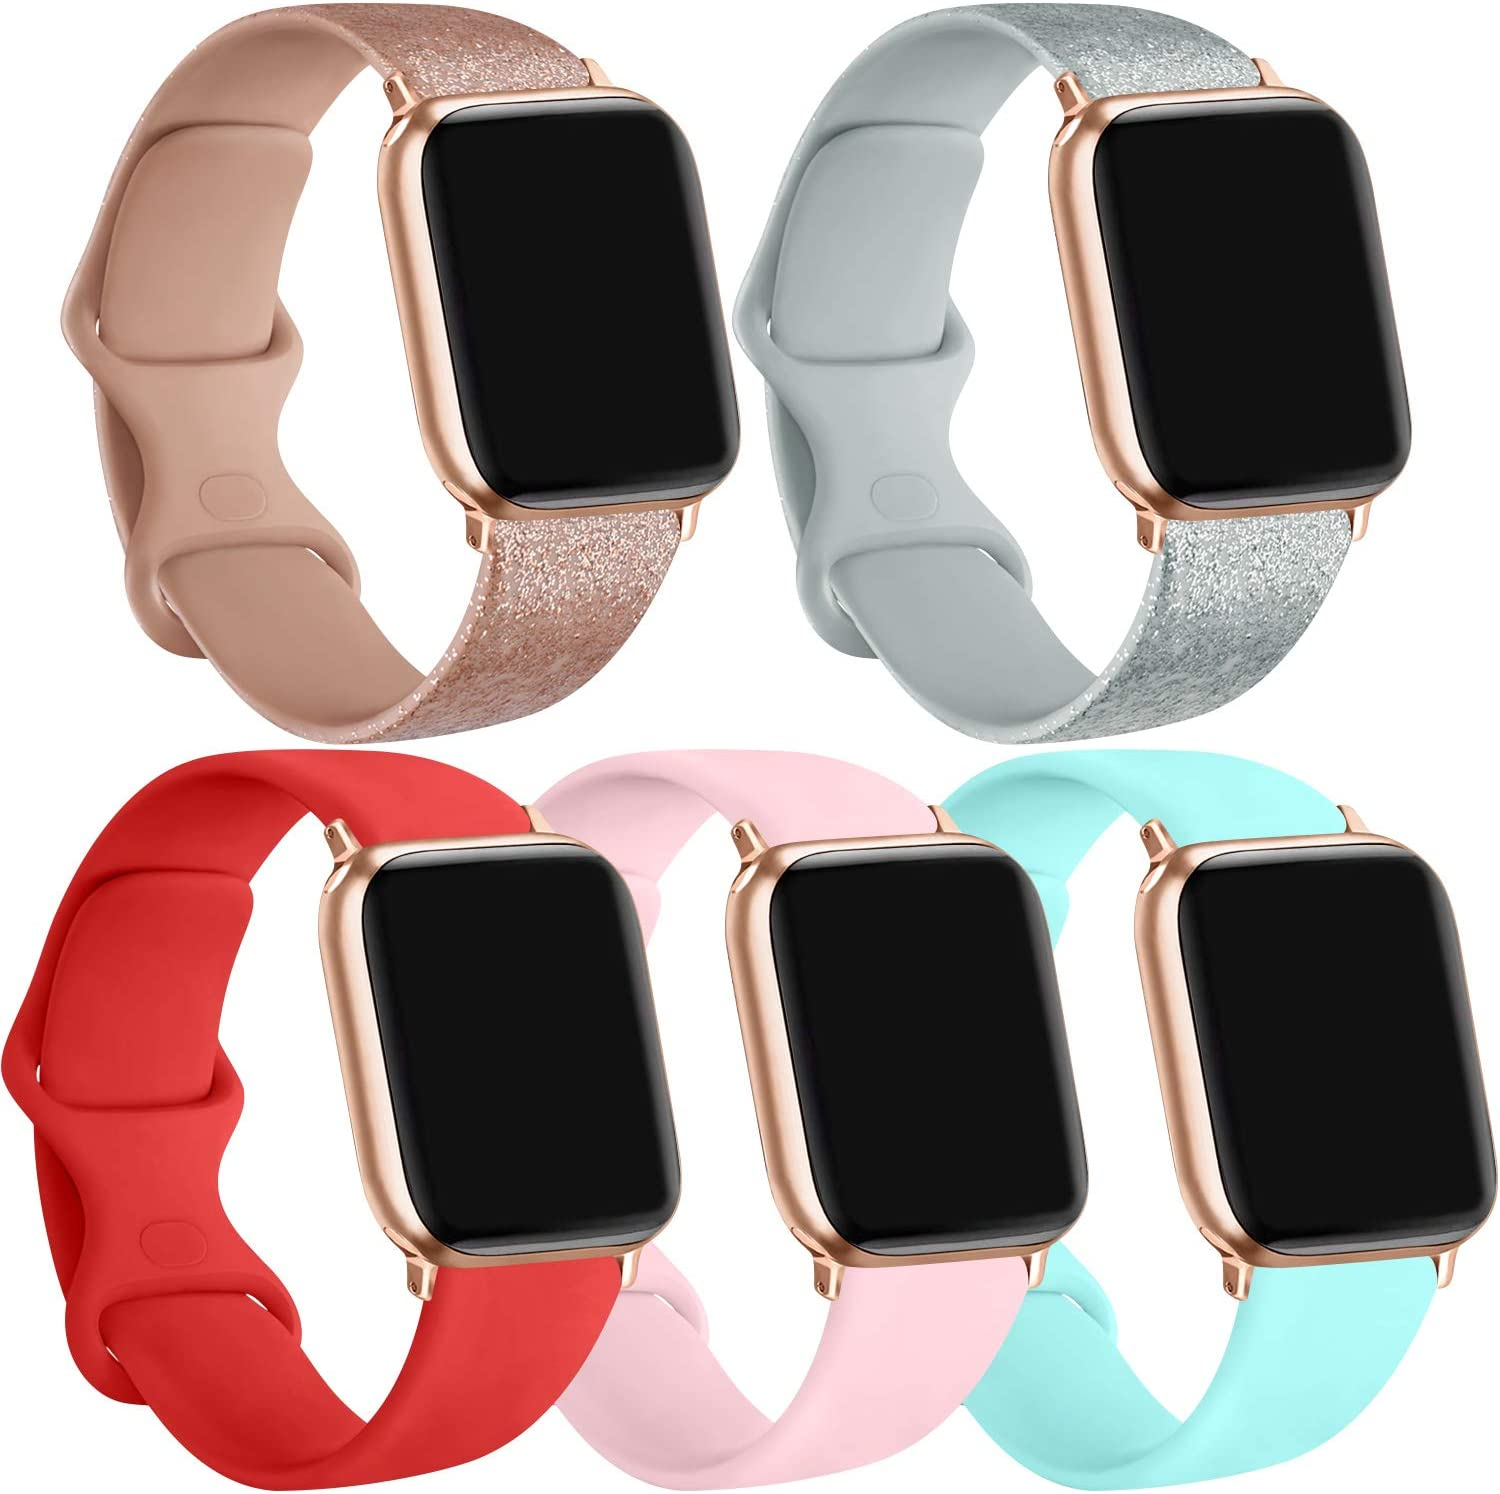 [5 Pack] Silicone Bands Compatible for Apple Watch Bands 38mm 40mm, Sport Band Compatible for iWatch Series 6 5 4 3 SE(Light Blue/Shine Rosegold/Shine Silver/Orange red/Pink, 38mm/40mm-M/L)